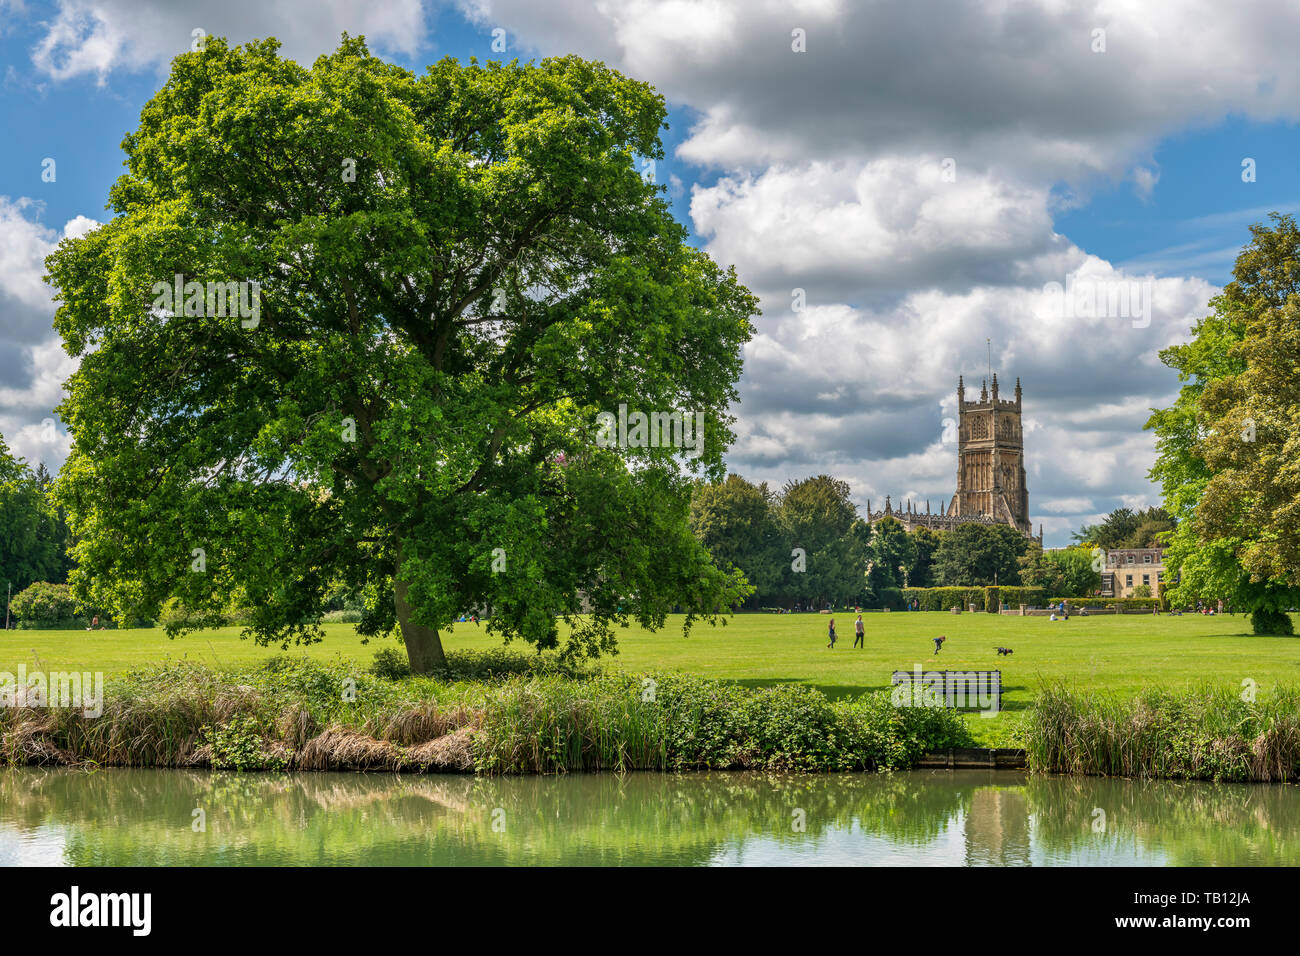 The Abbey Grounds is a fantastic open green space in the centre of Cirencester in Gloucestershire. The grounds contain the site of St Mary's Abbey whi - Stock Image